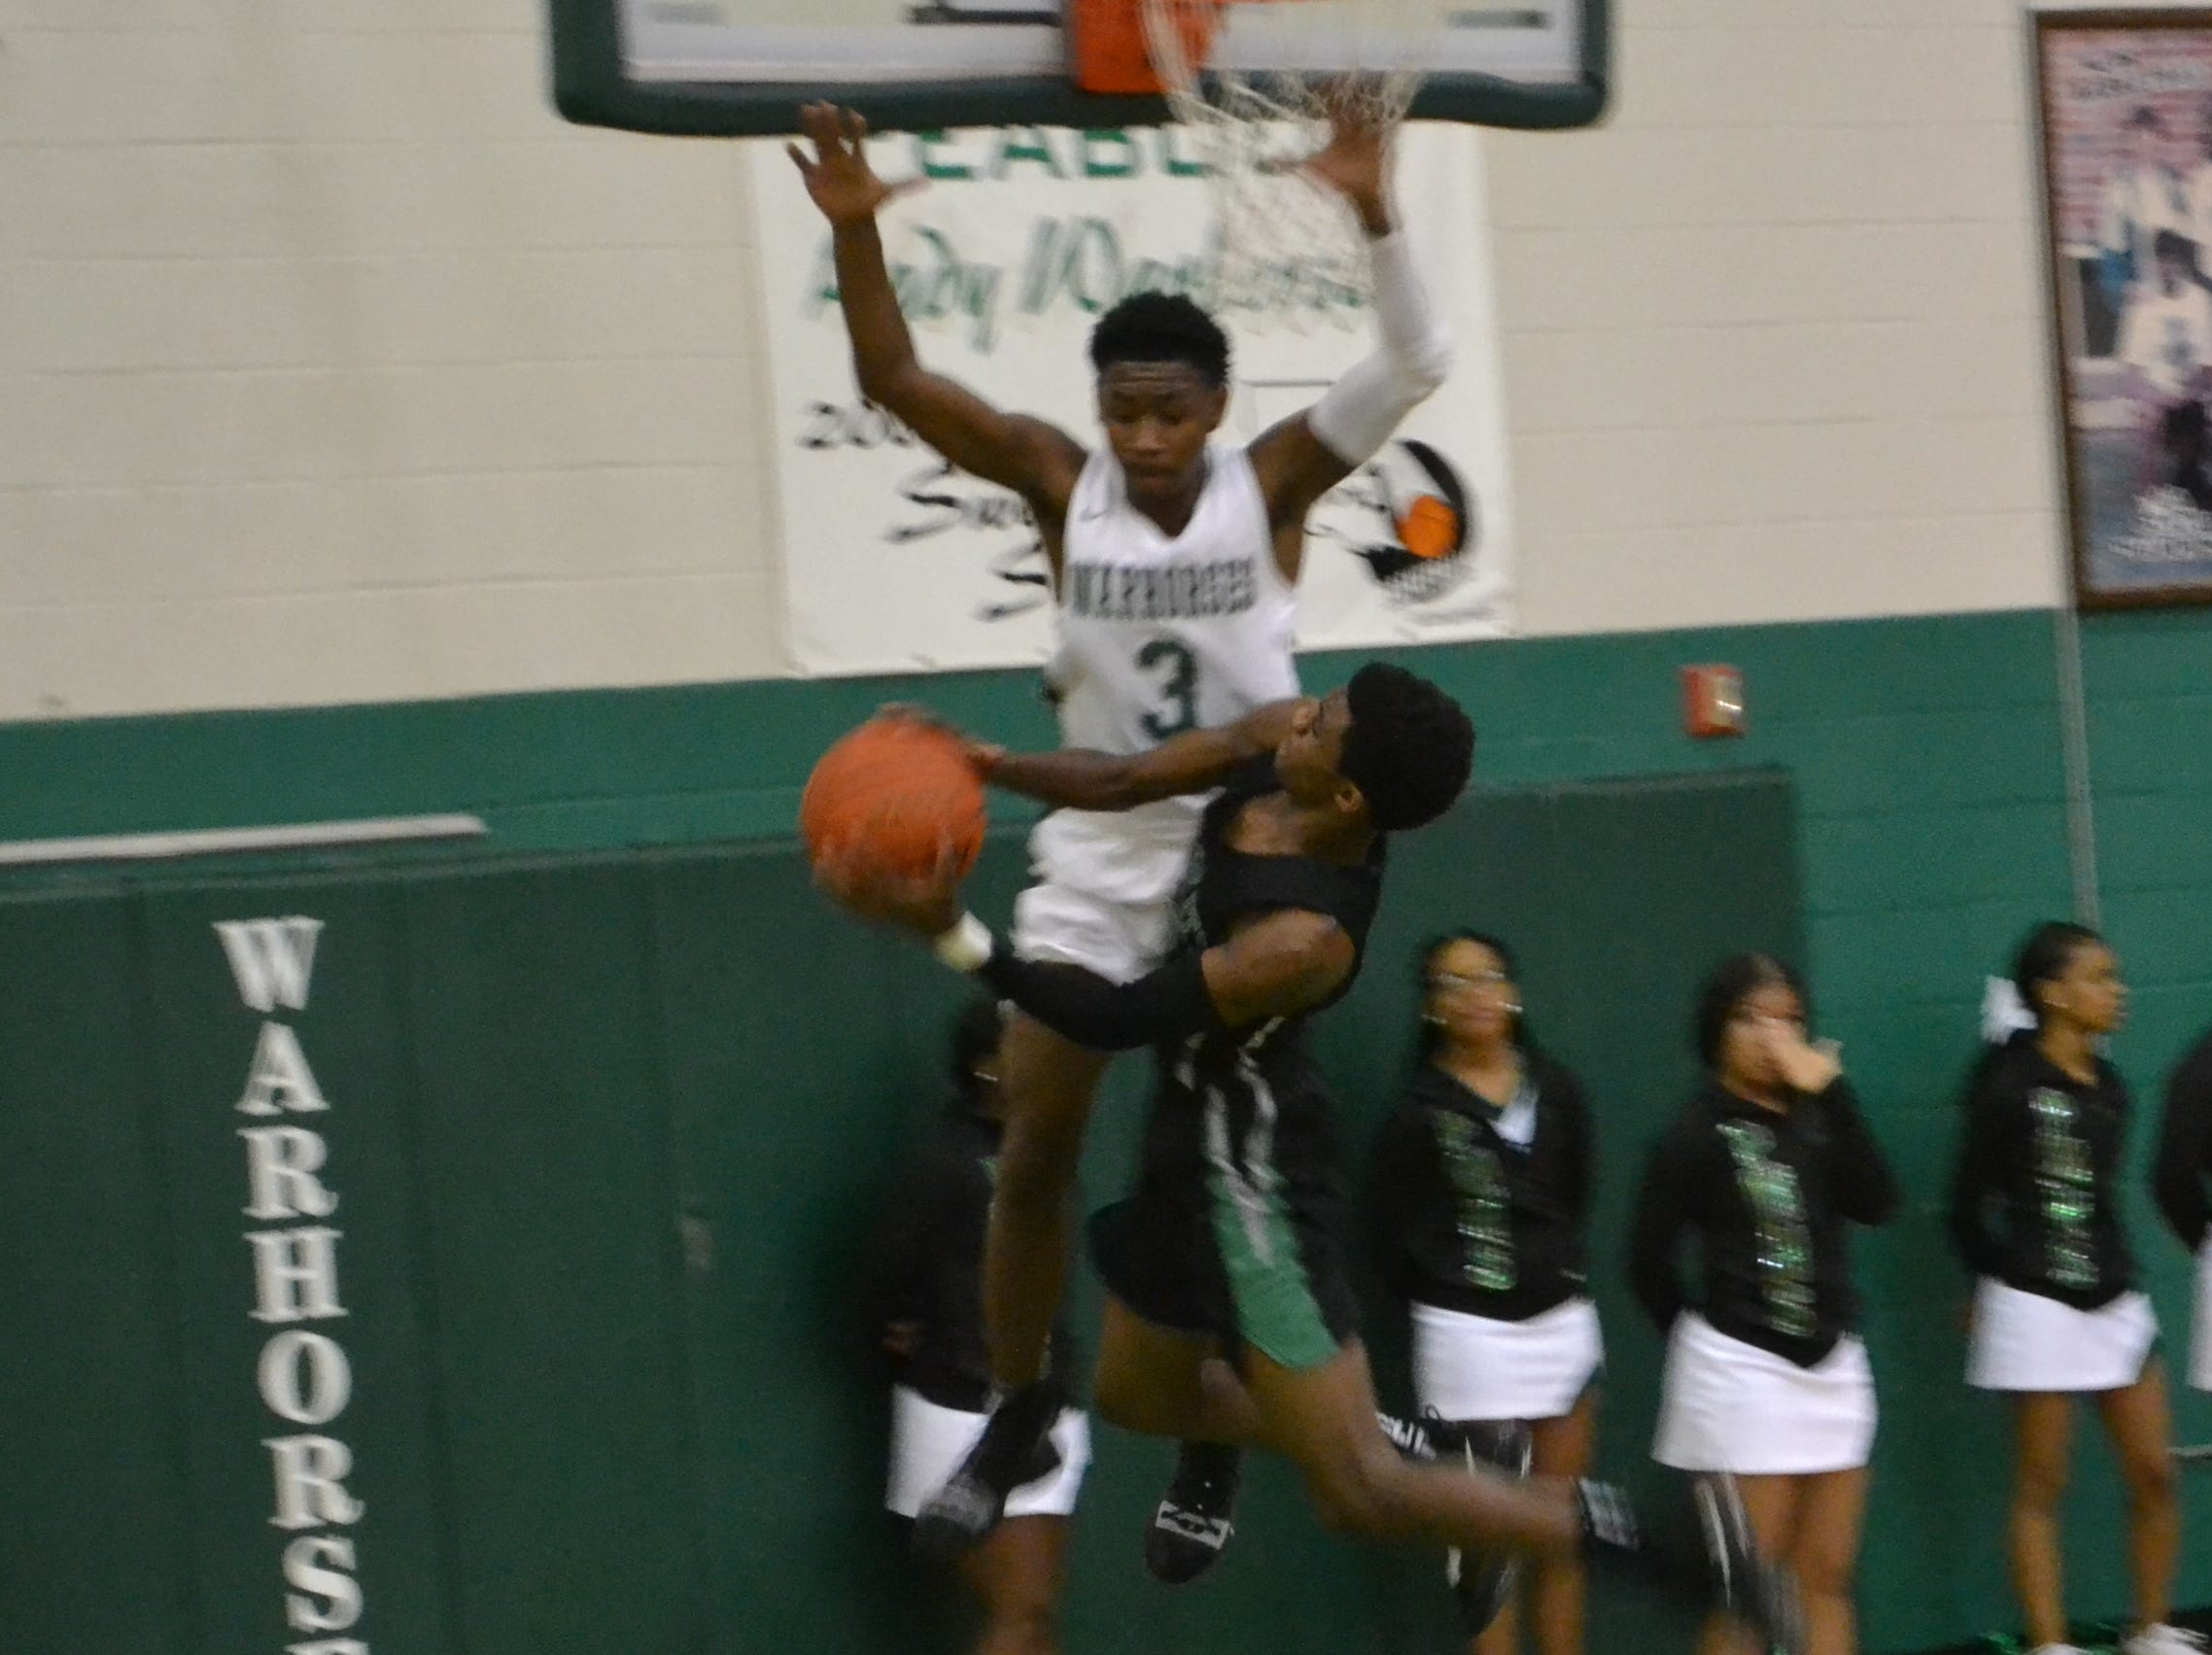 Melvion Flanagan (3) goes high to make sure Bossier's Kaalas Roots doesn't have room to shoot. The Peabody boys basketball team played the Bossier Bearkats Tuesday night at the Emerald Palace. Peabody got the win 72-67.